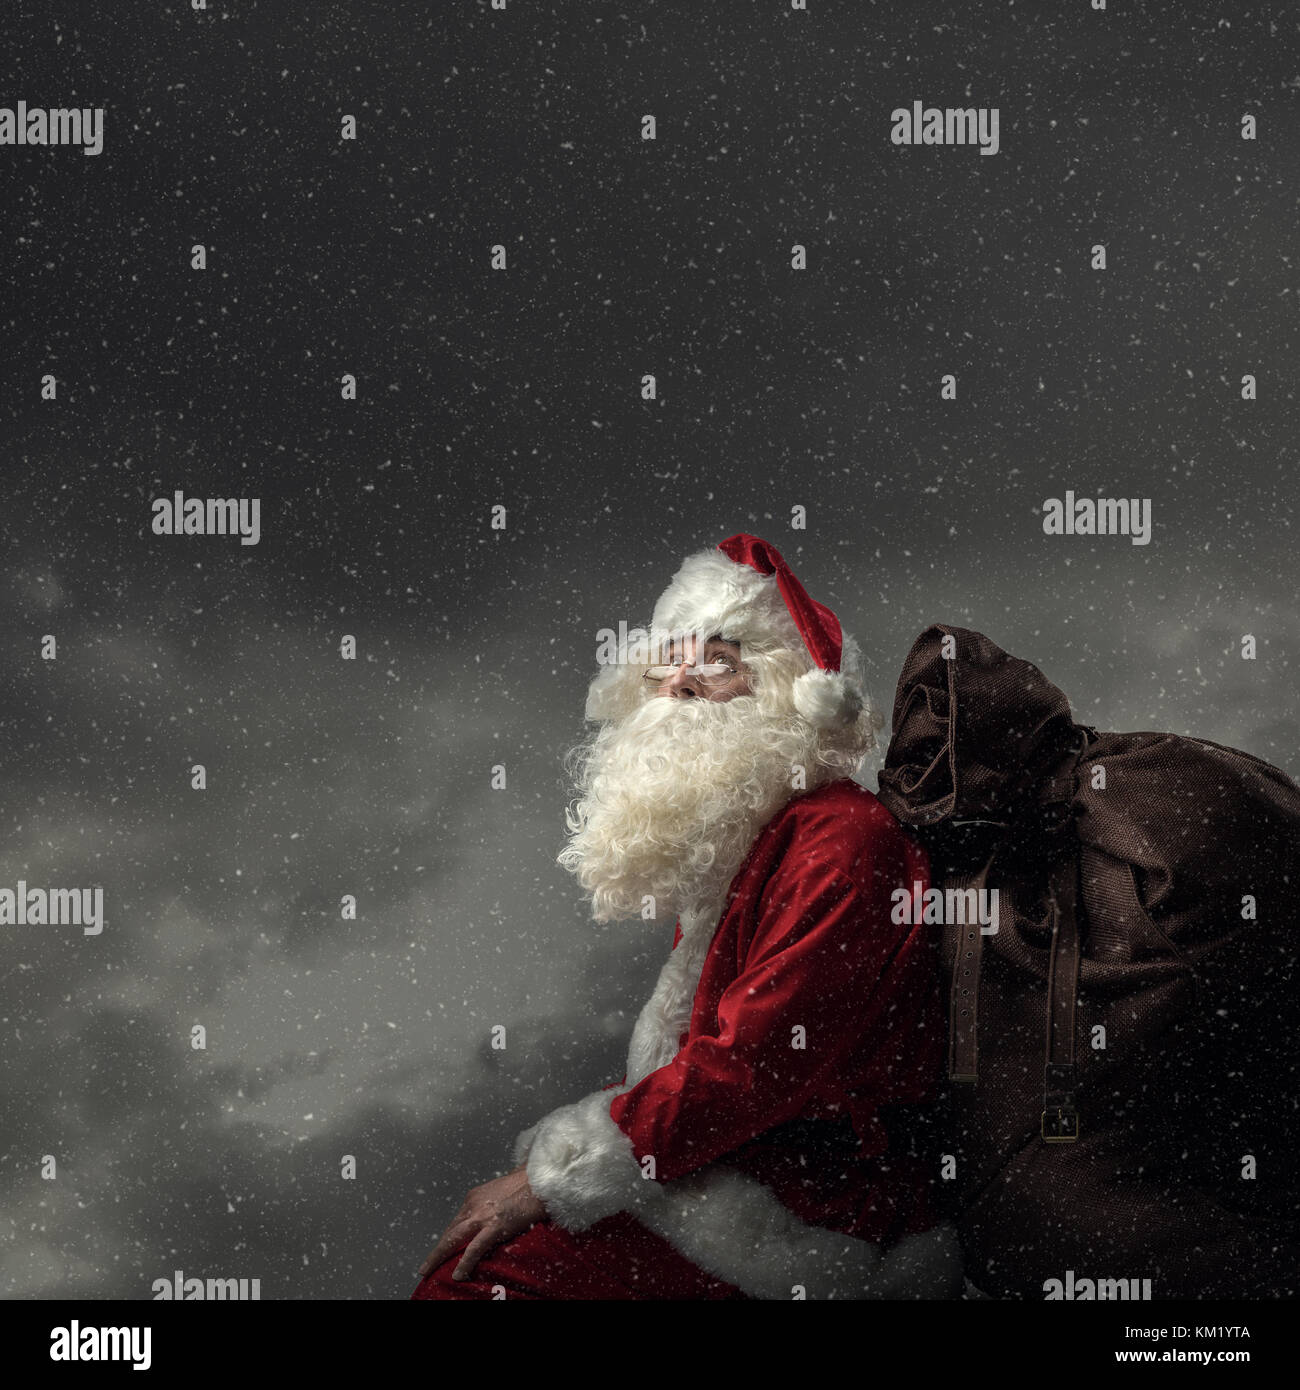 Santa Claus bringing gifts on Christmas Eve: he is sitting on a roof at night, carrying his sack and looking away - Stock Image